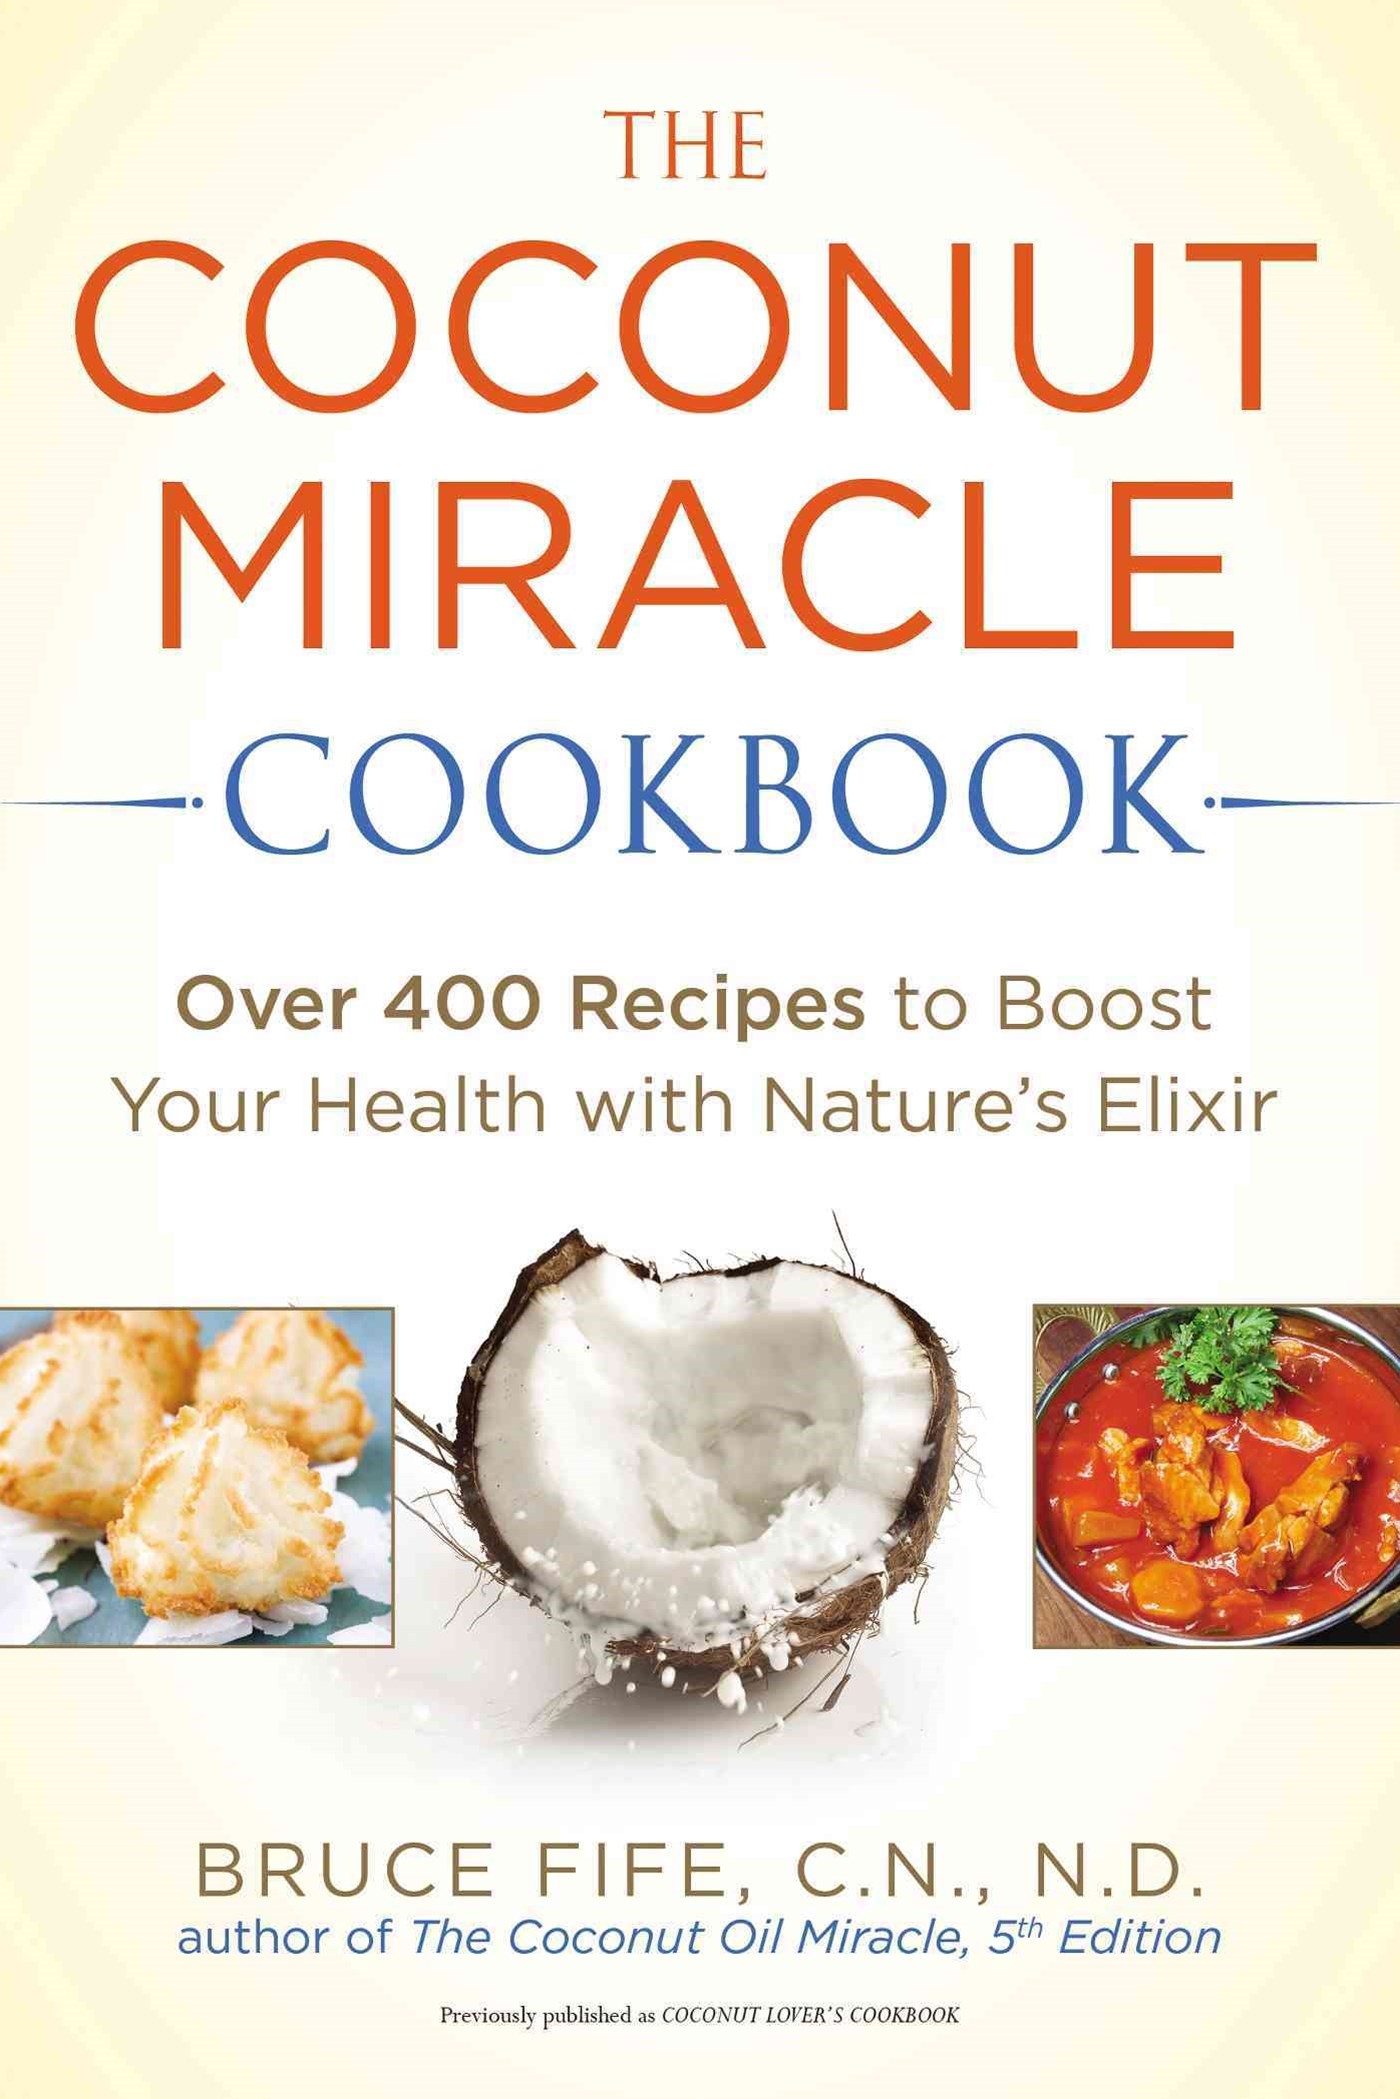 The Coconut Miracle Cookbook: Over 400 Recipes to Boost Your Health withNature's Elixir